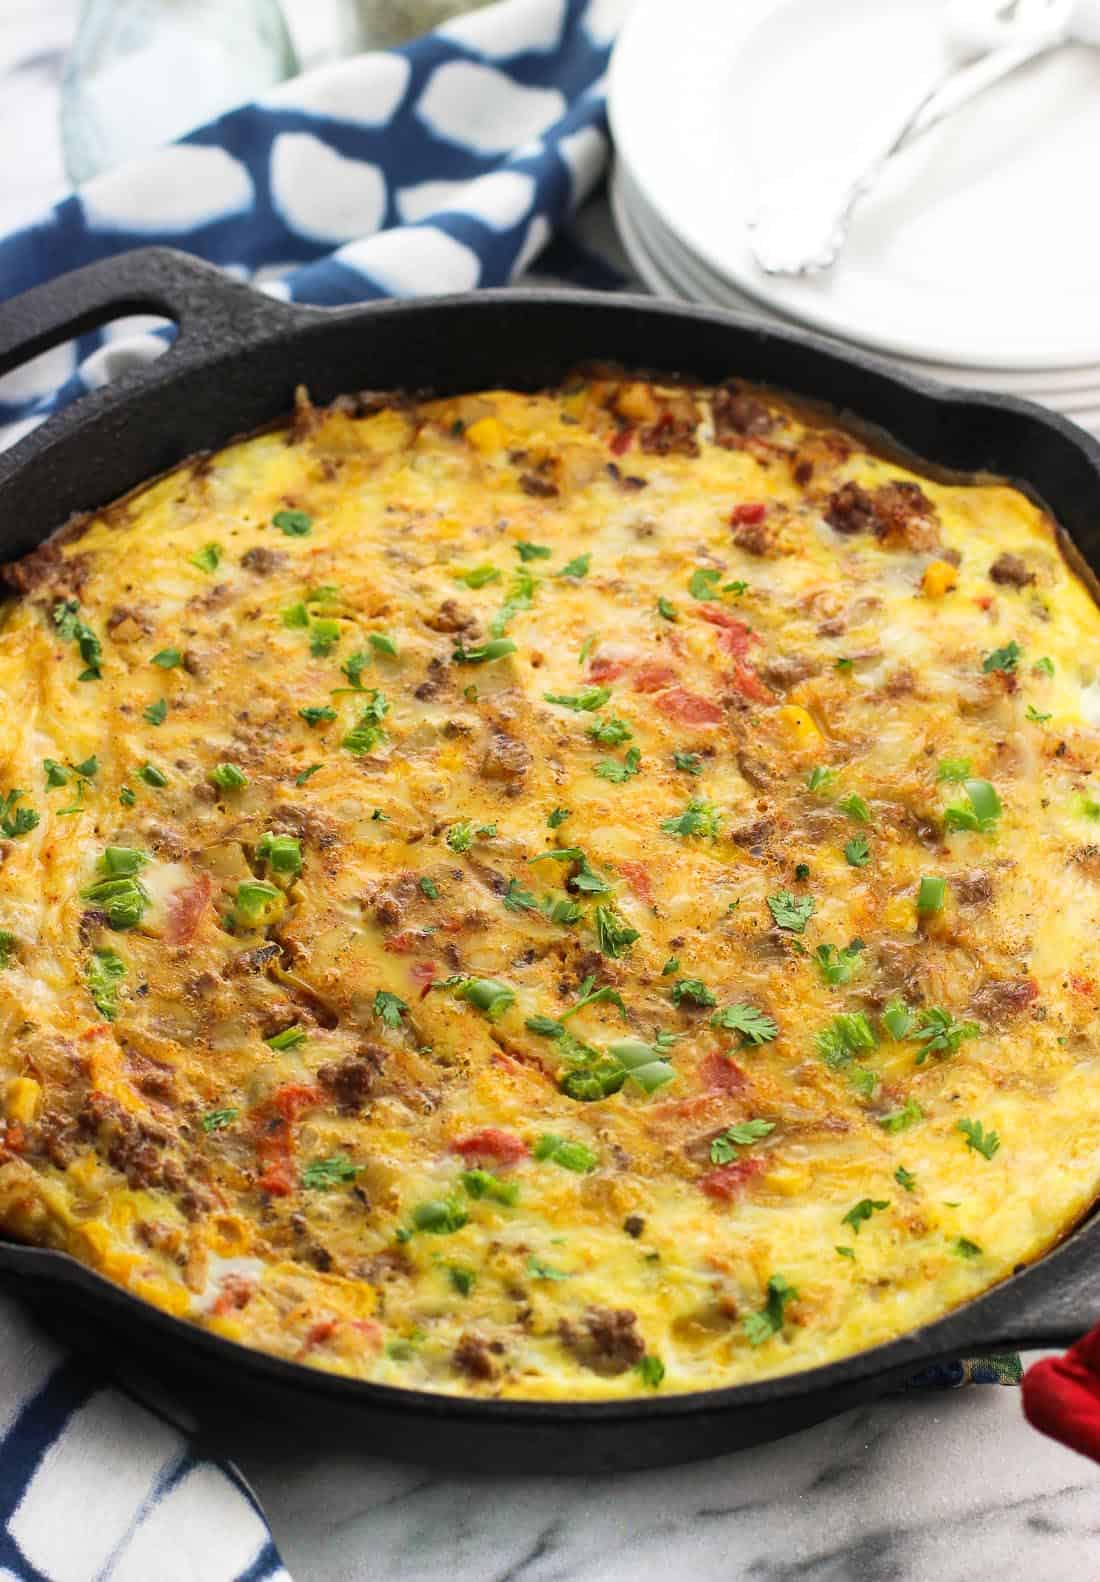 A baked southwestern frittata in a round cast iron pan.